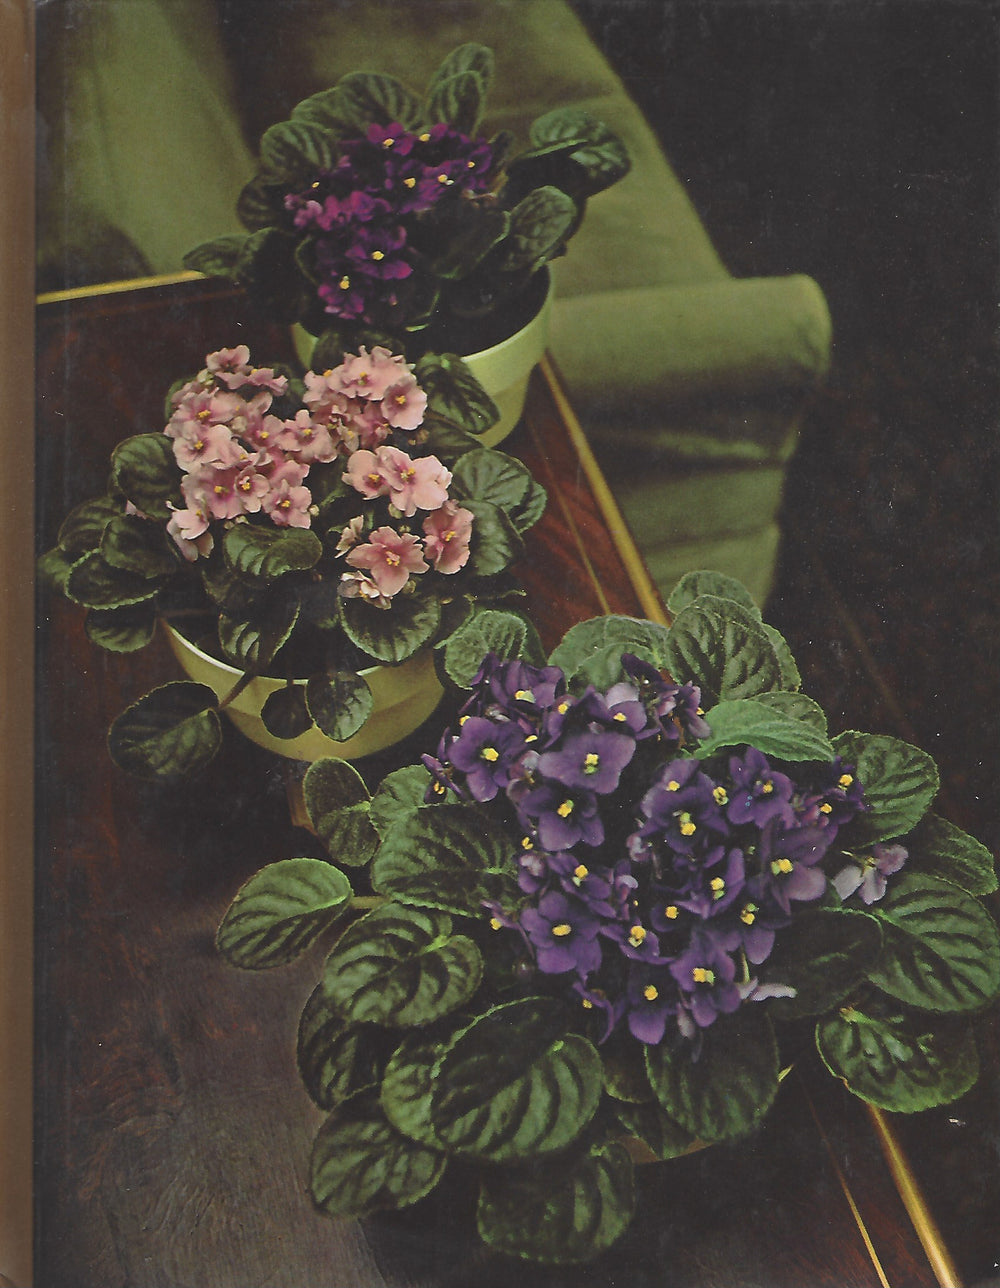 TIME-LIFE: The Encyclopedia of Gardening; Flowering House Plants by James Underwood Crockett  (1972)